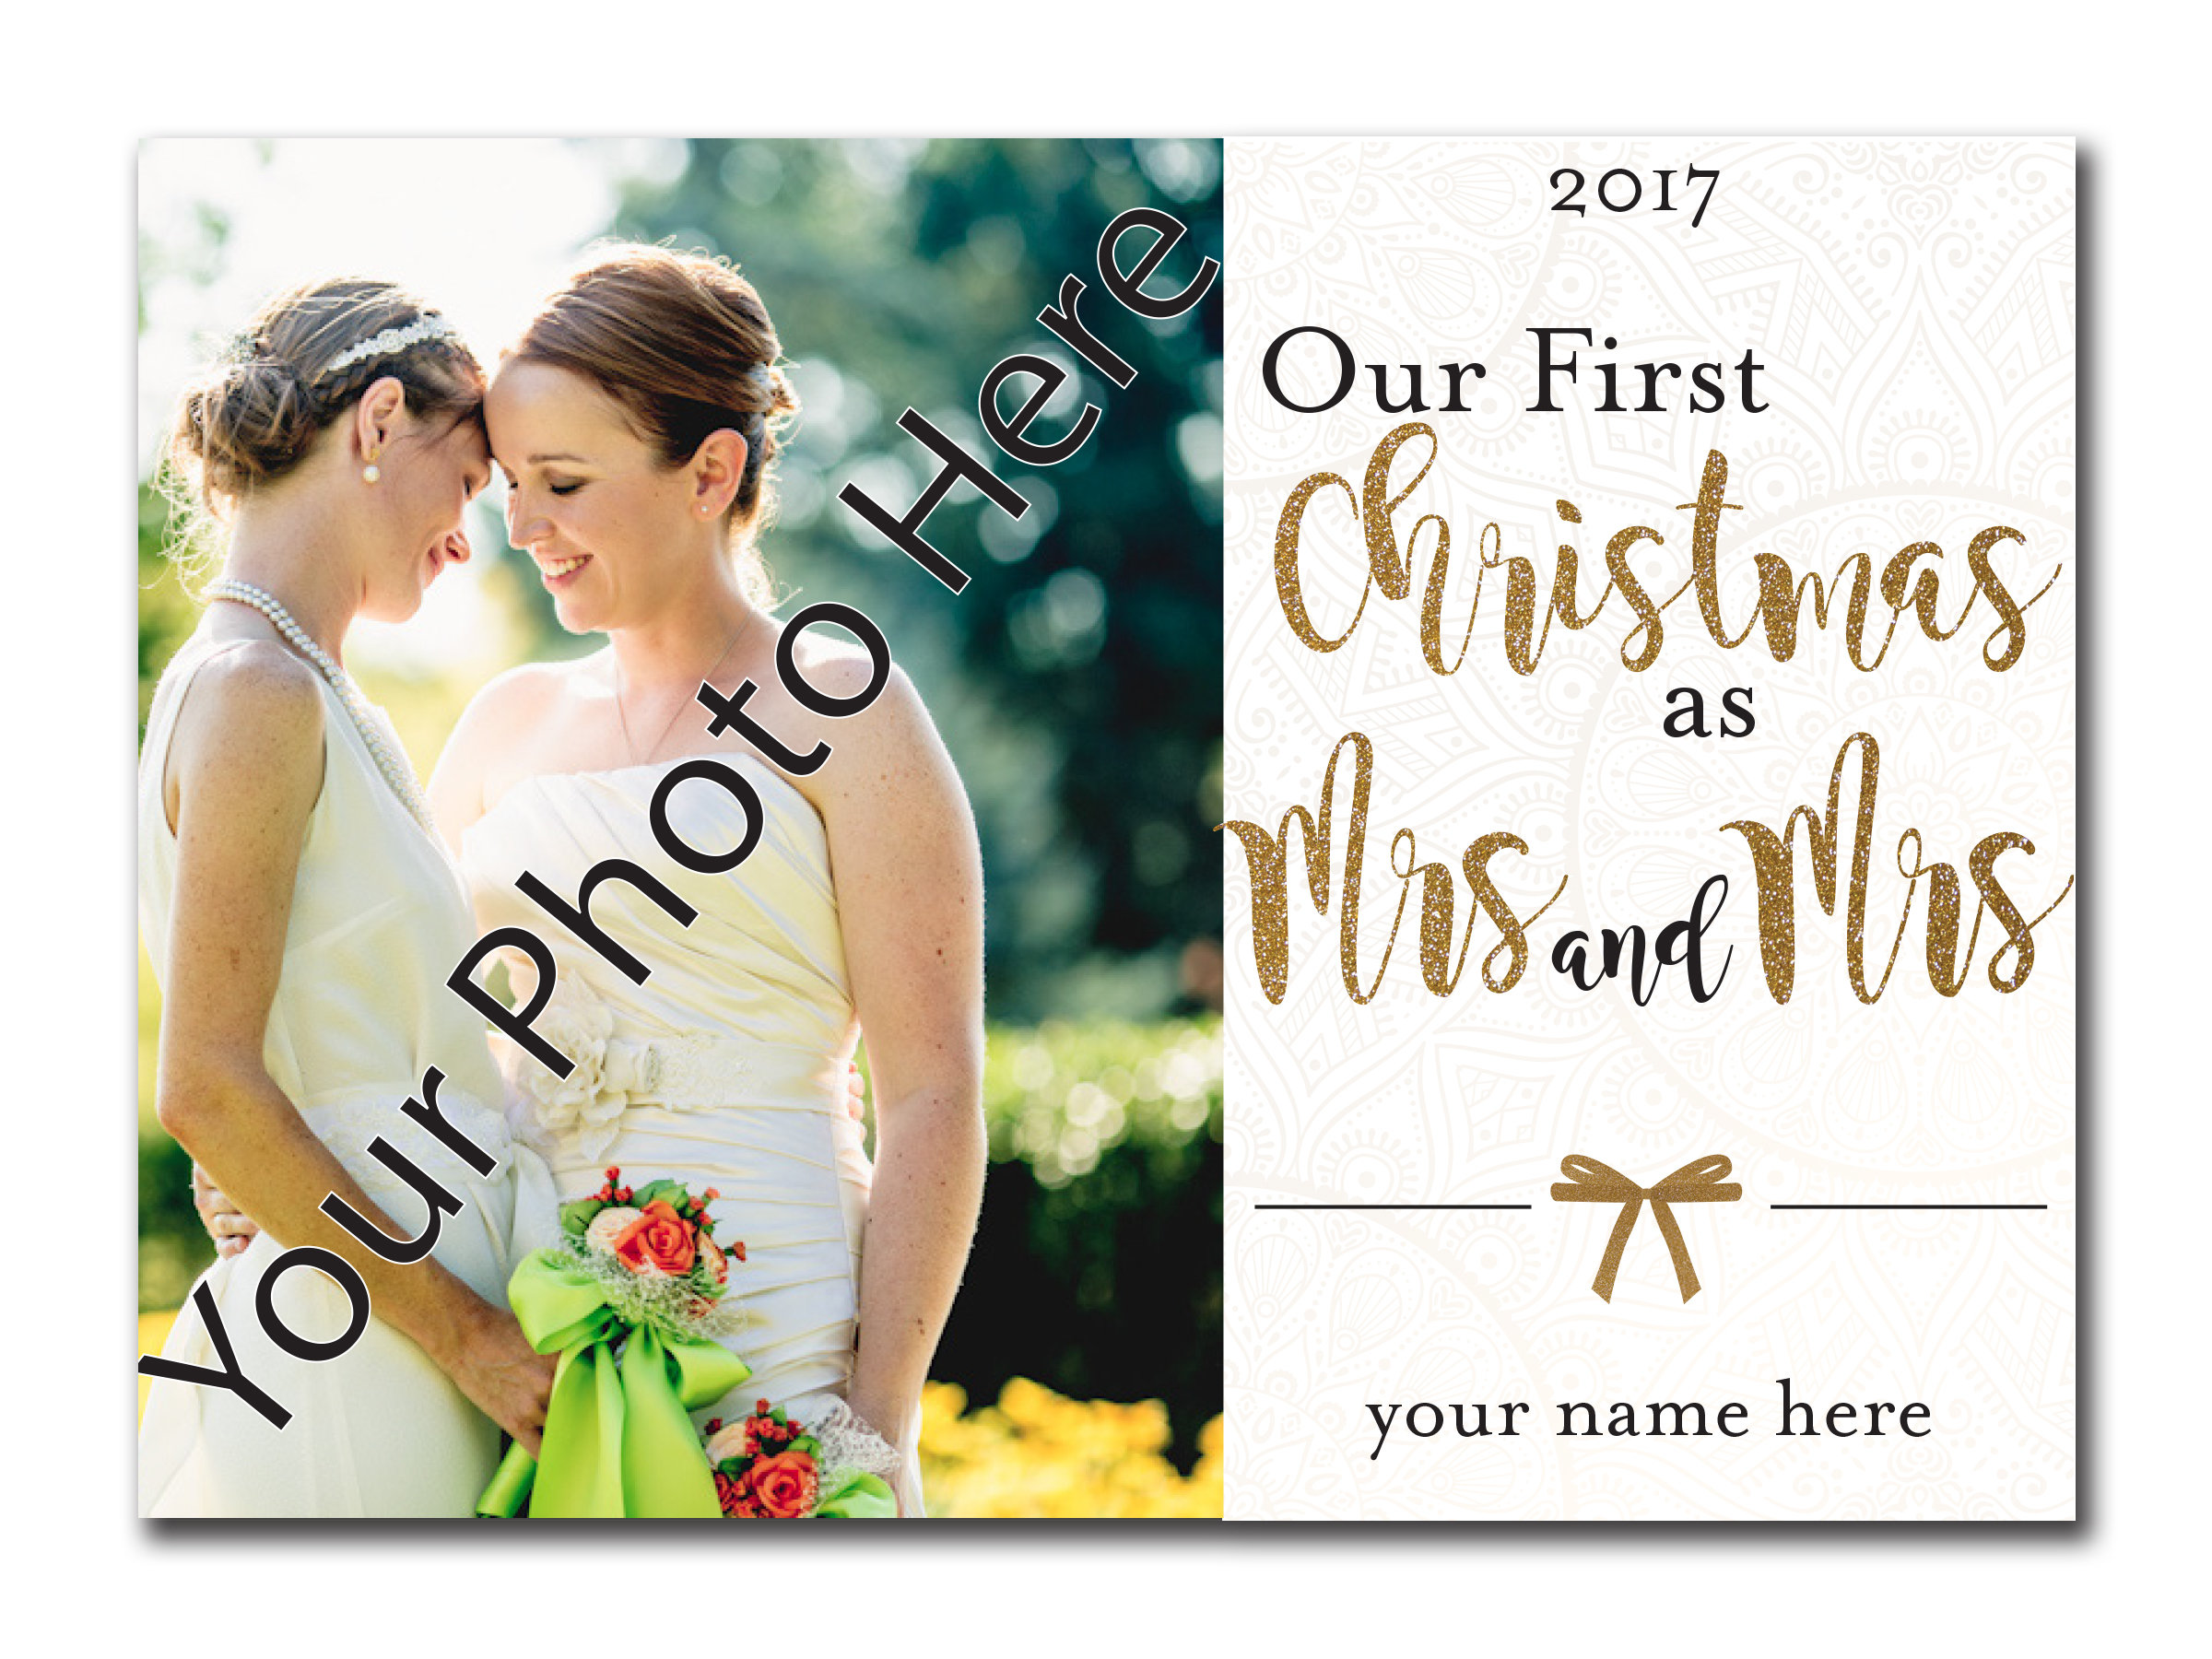 Our First Christmas as Mrs. and Mrs. 5x7 00035